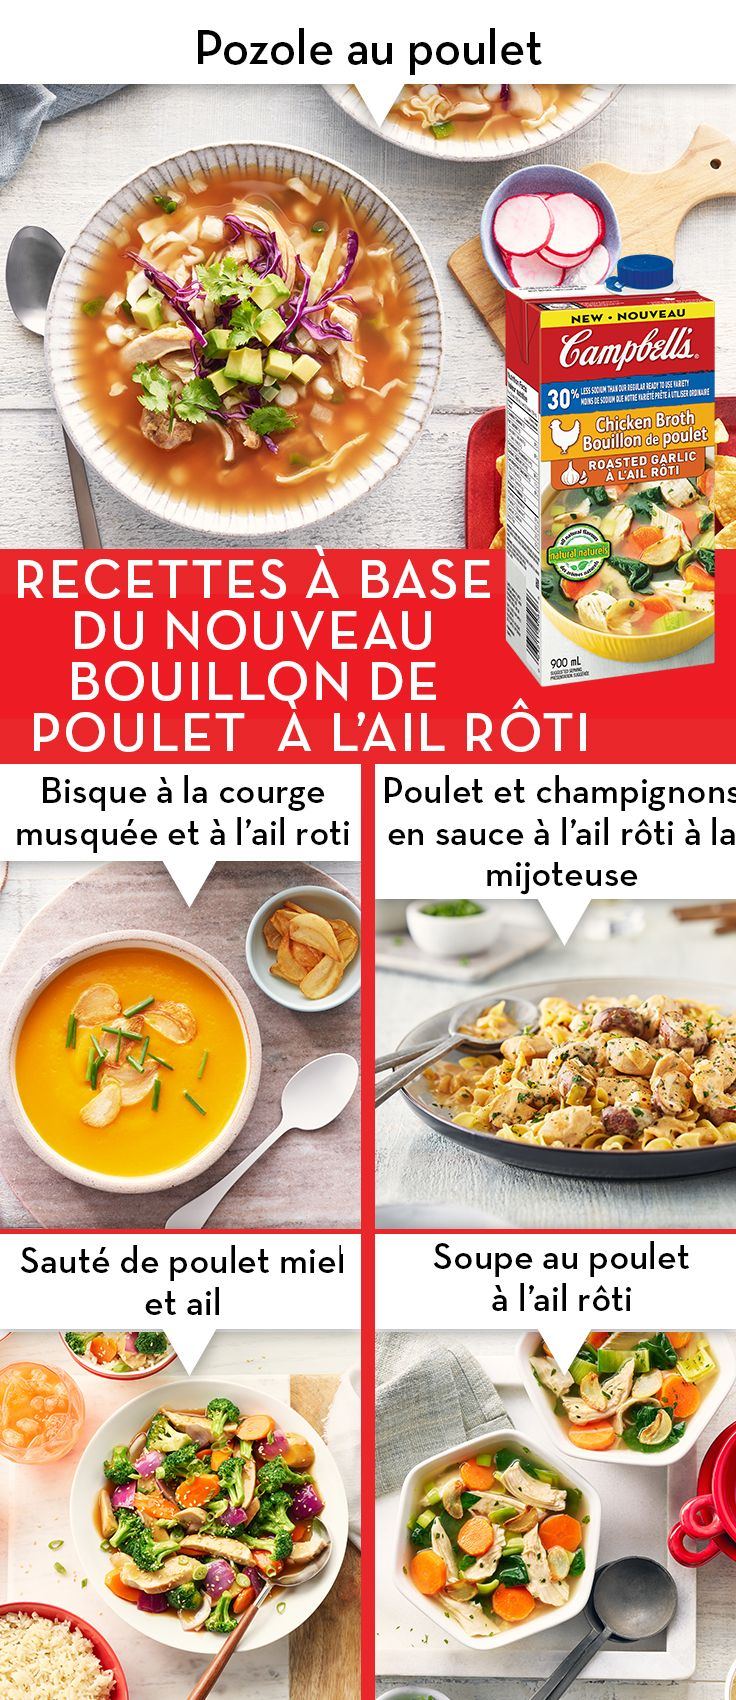 Moins De Sodium L Ail Roti Poulet Cuisinez Avec Campbells Campbells Soup Recipes Chicken Broth Recipes Soup Recipes